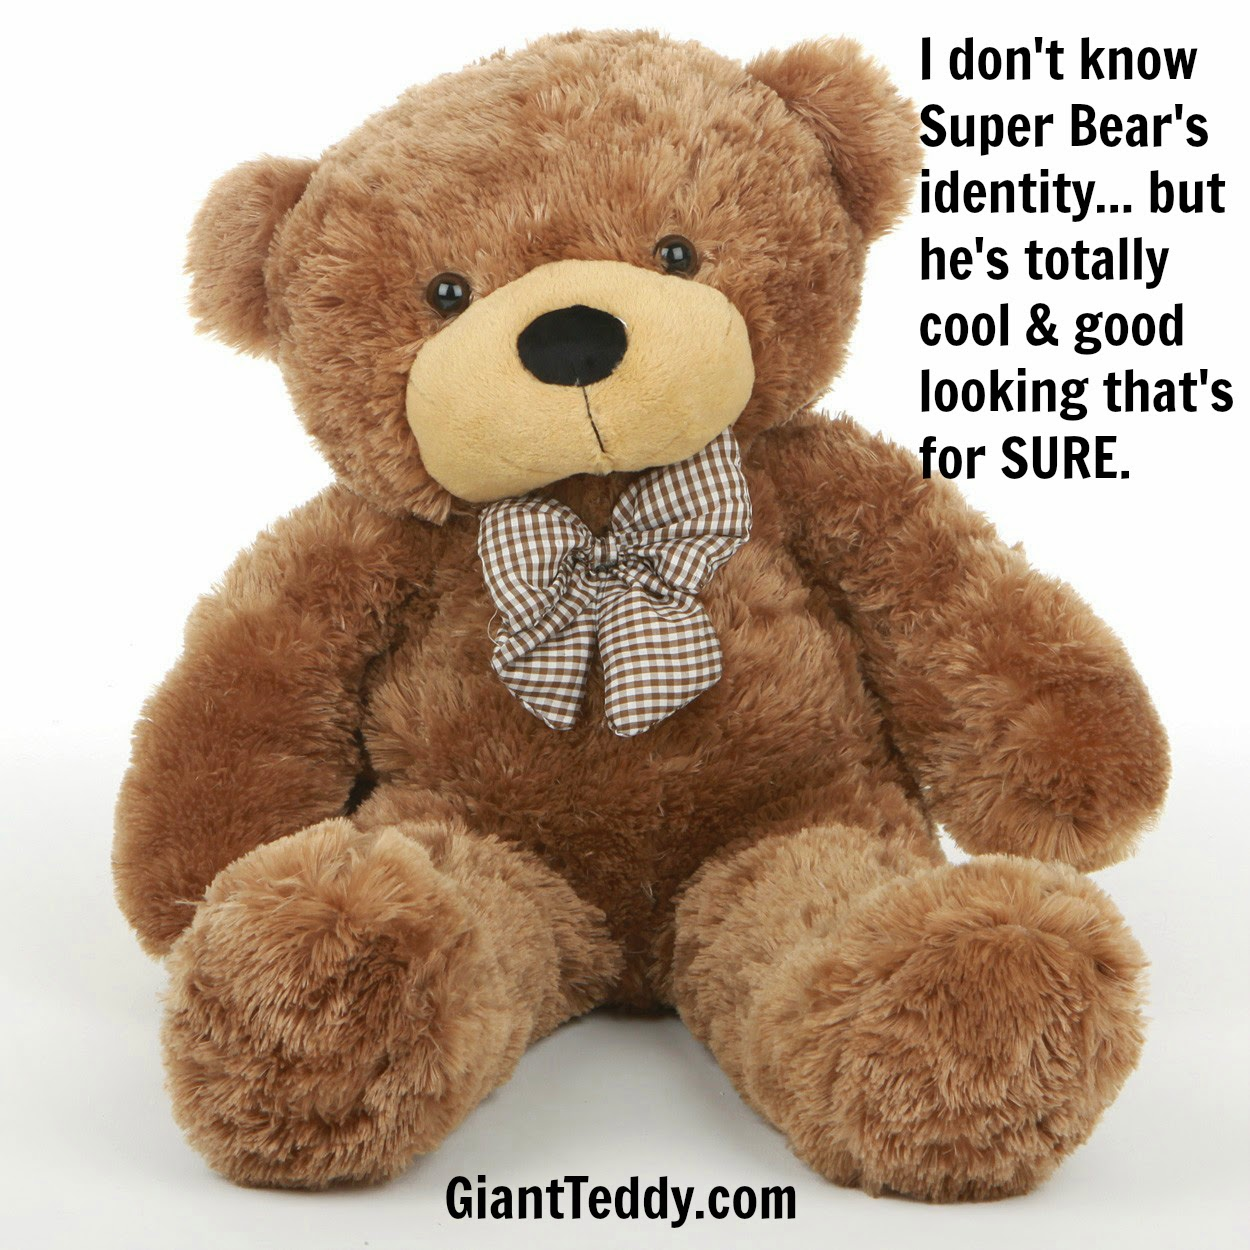 Sunny Cuddles, life-size mocha brown Giant Teddy bear, says he doesn't know who Super Bear is... but he admires him greatly!